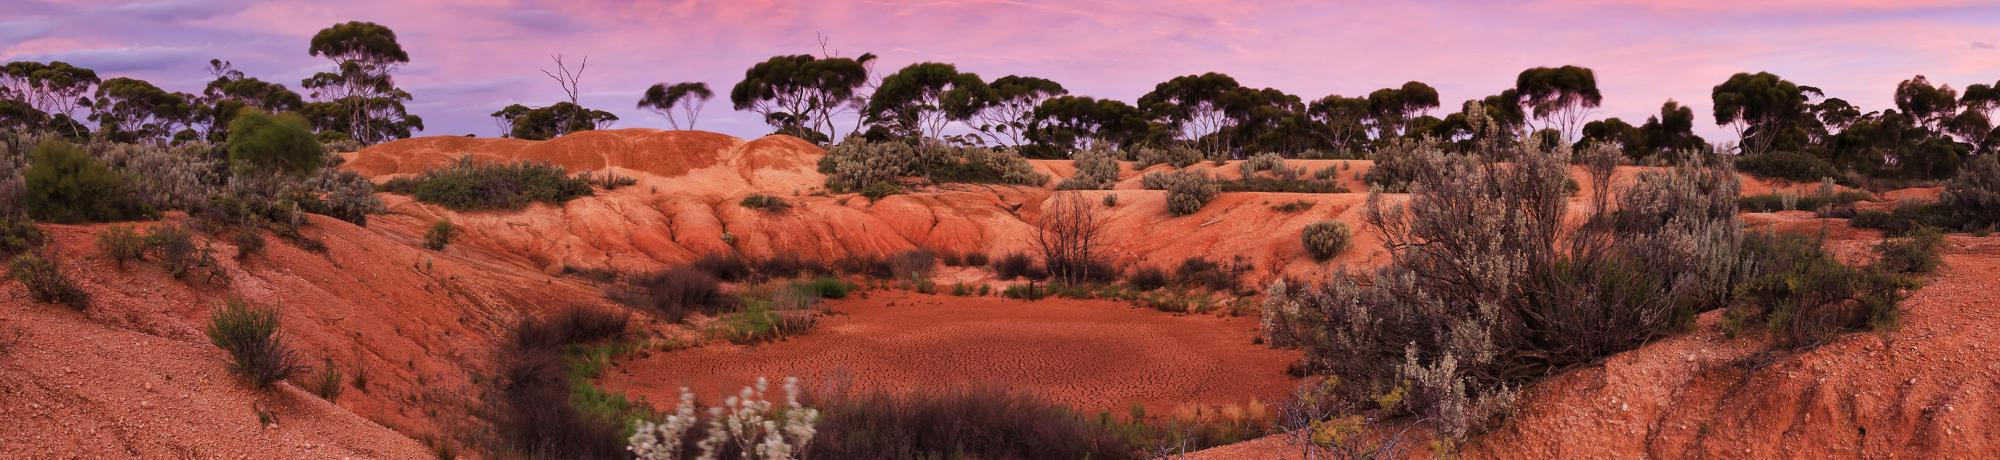 UC Davis Study Abroad, Summer Abroad Australia, Urban to Outback Program, Header Image, On Site Page